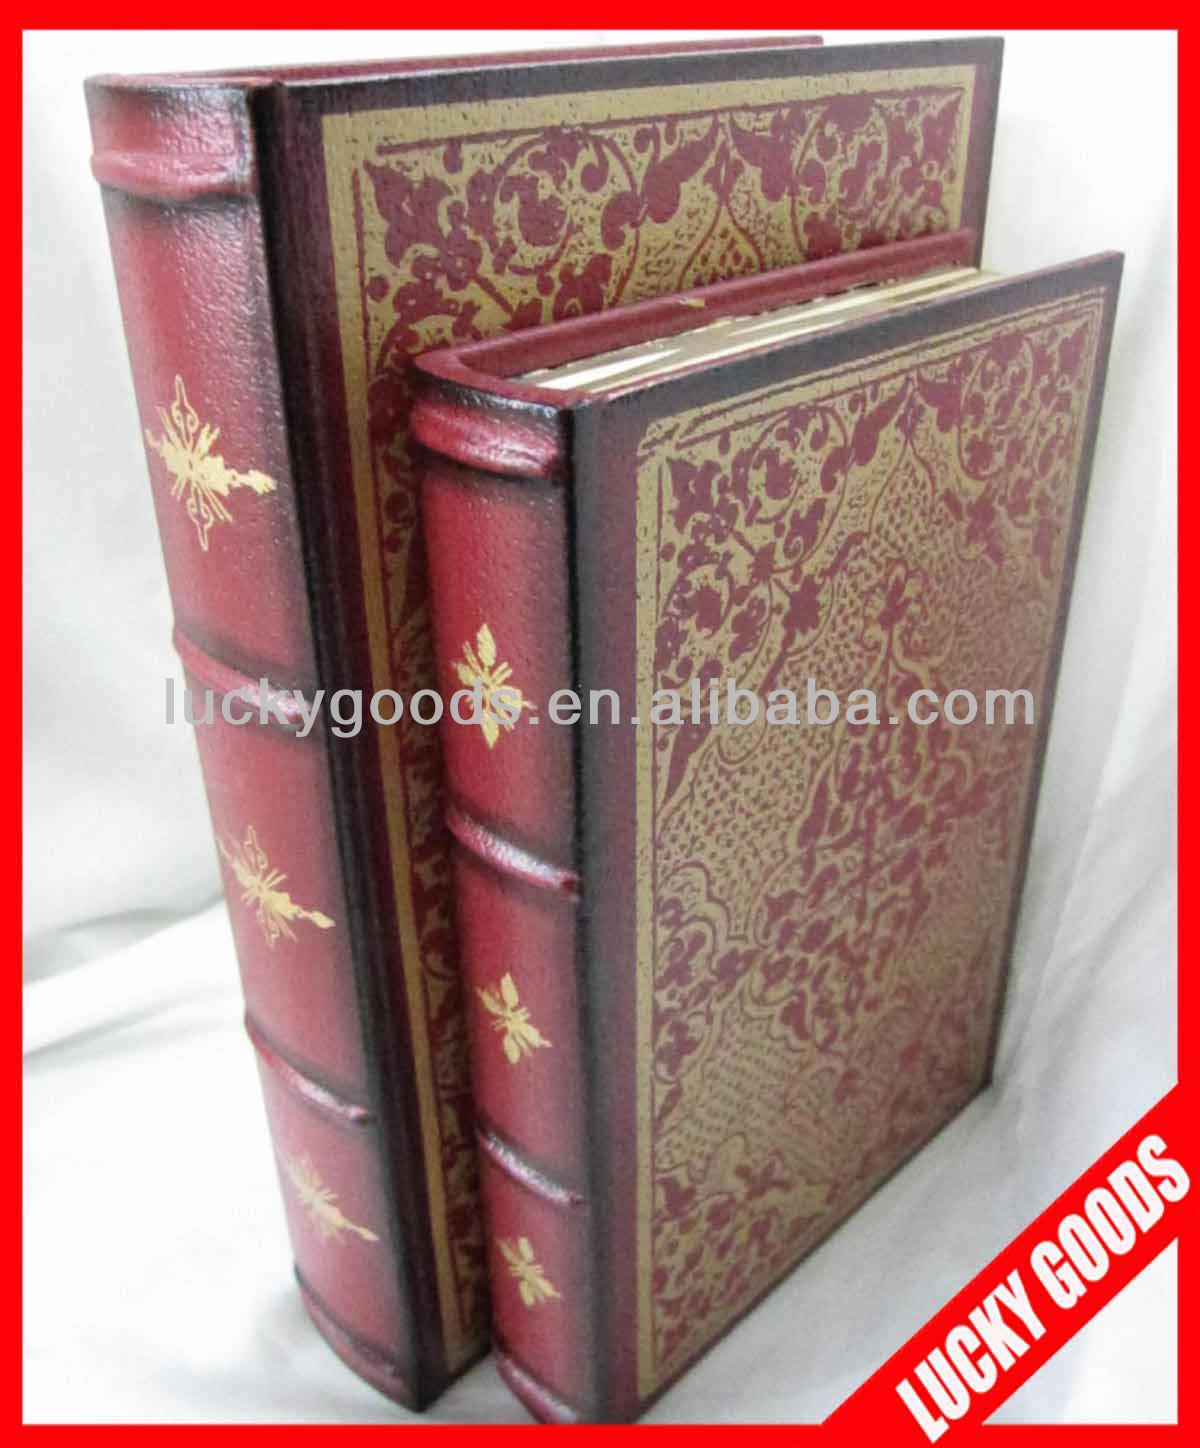 decorative book shaped antique book boxes wholesle